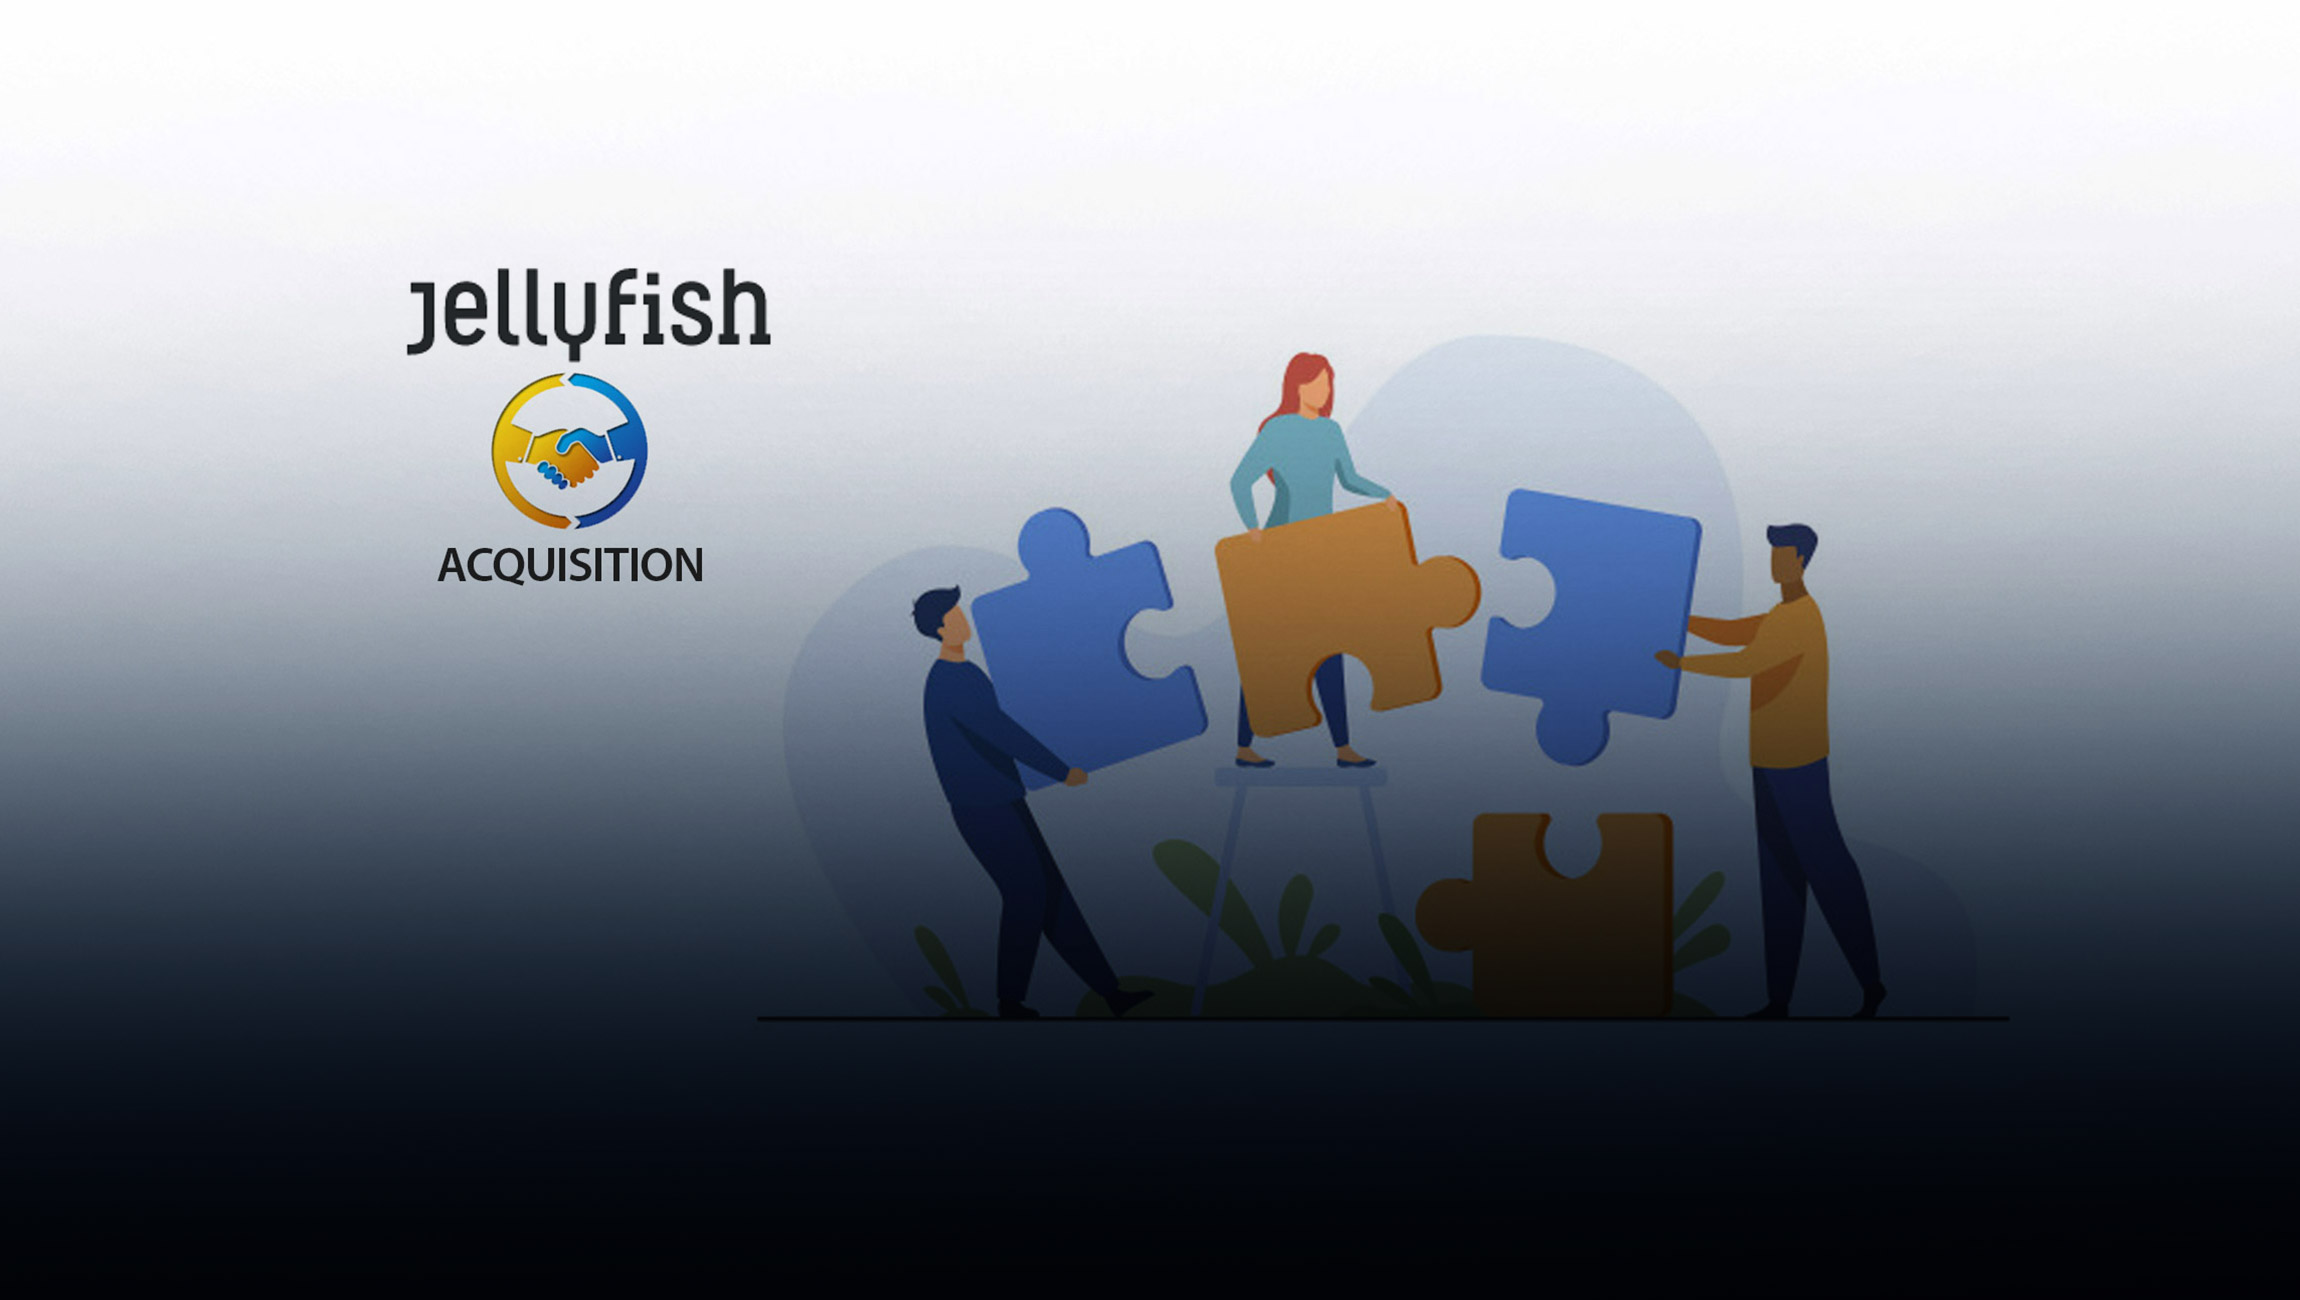 Jellyfish Acquires 5 Companies, Fueling Global Expansion With New Digital Capabilities